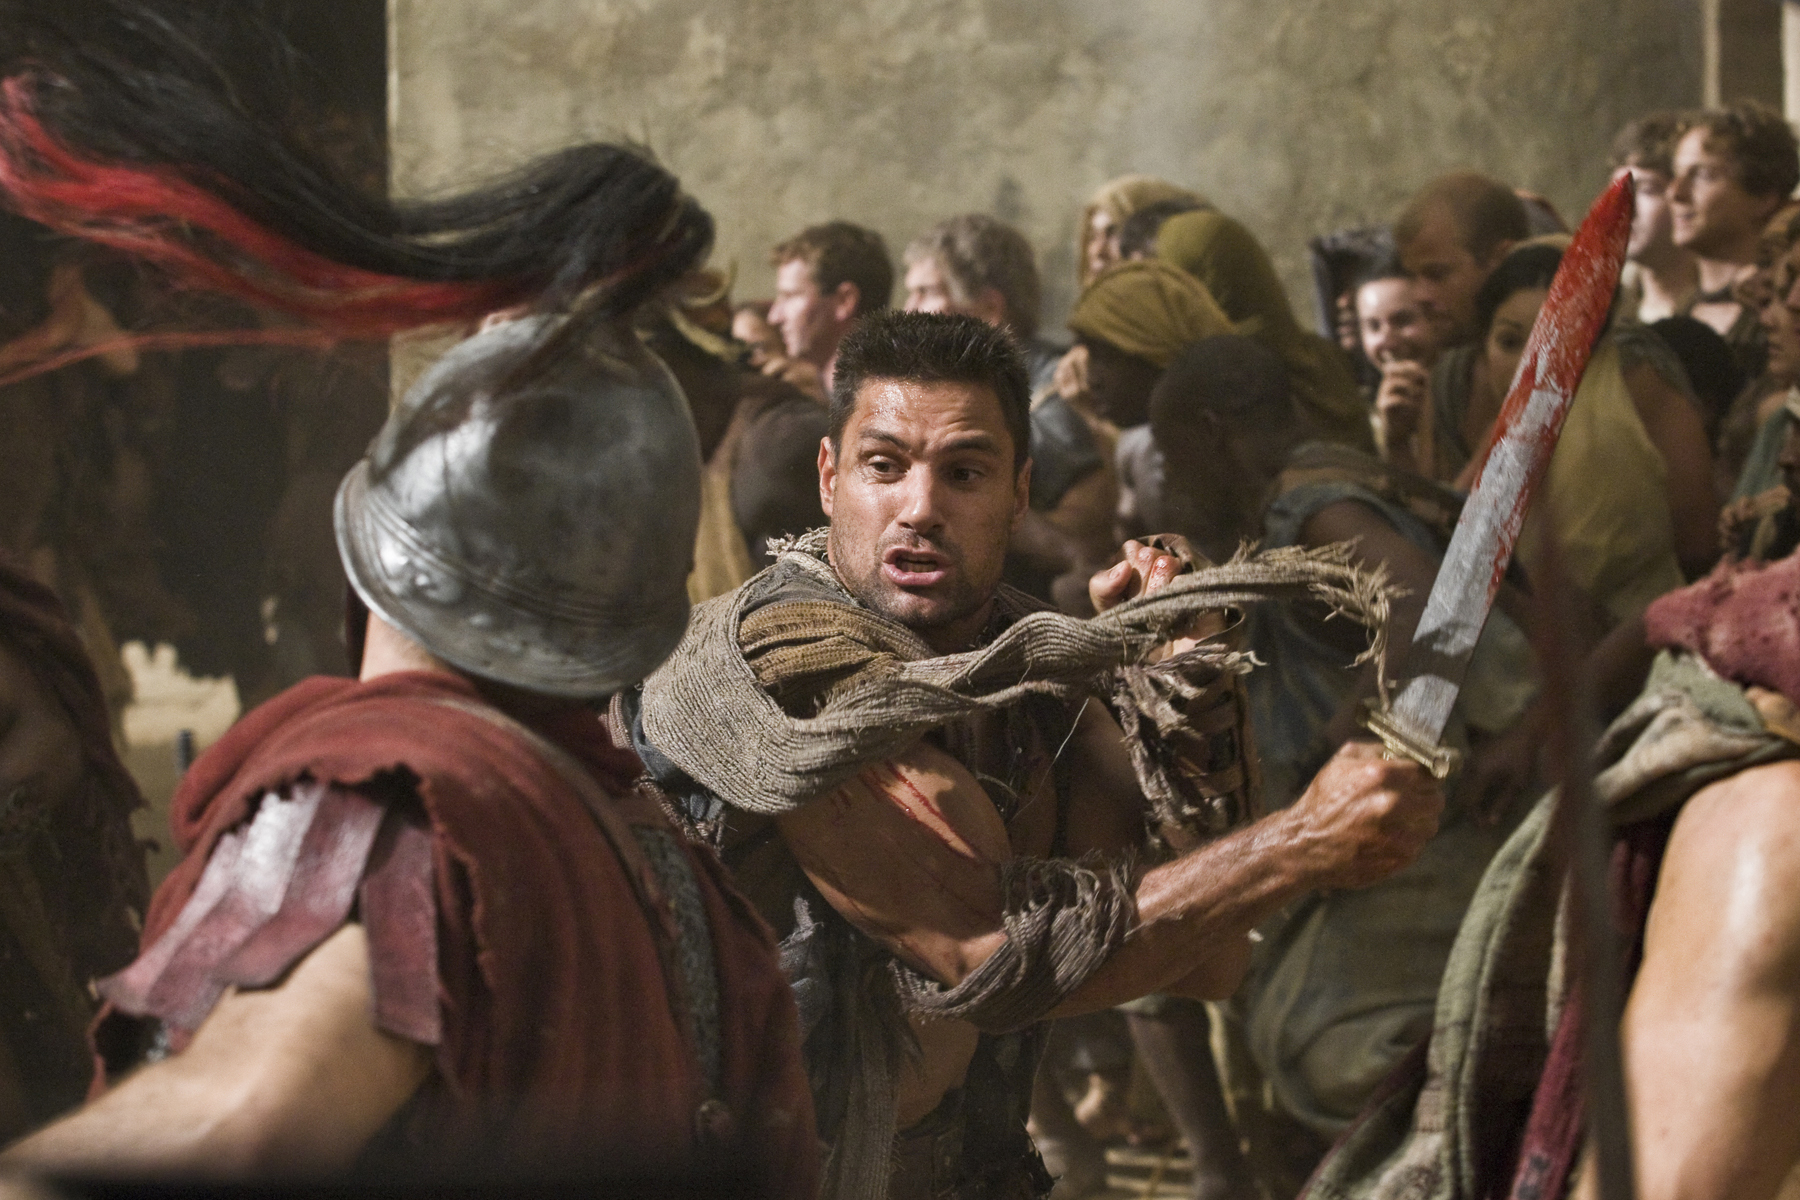 spartacus season 1 episode 10 full episode